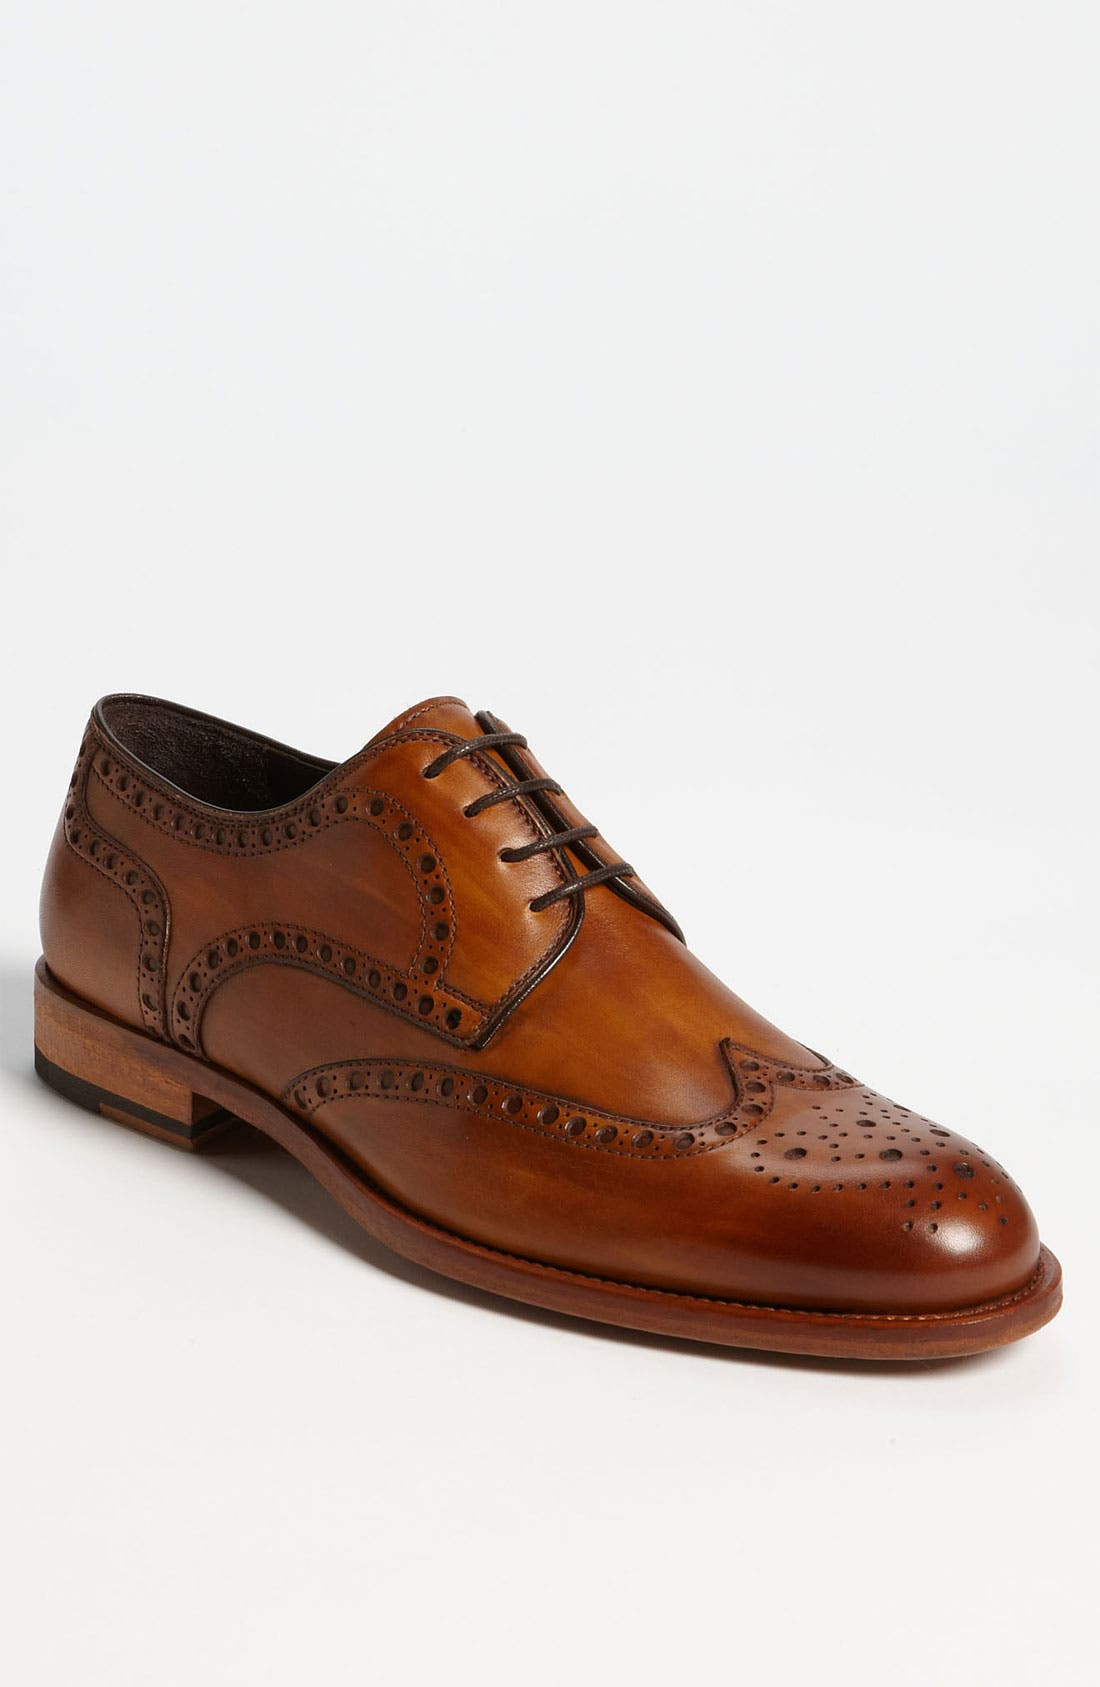 Alternate Image 1 Selected - Magnanni 'Luis' Wingtip